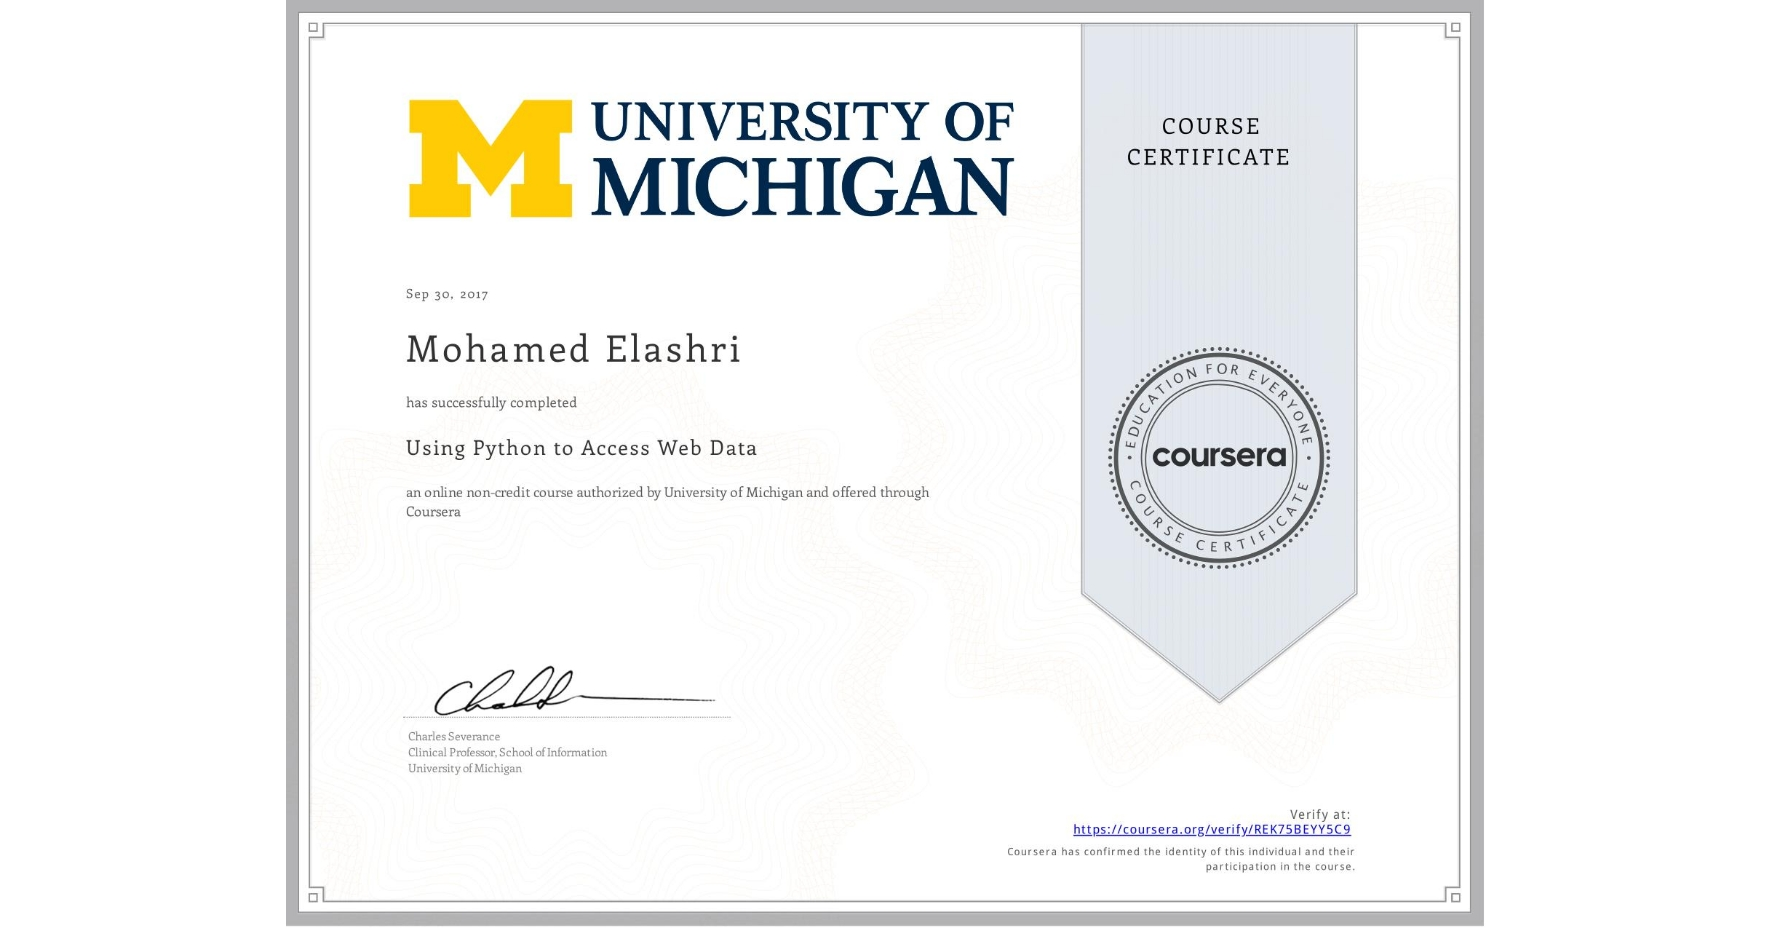 View certificate for Mohamed Elashri, Using Python to Access Web Data, an online non-credit course authorized by University of Michigan and offered through Coursera